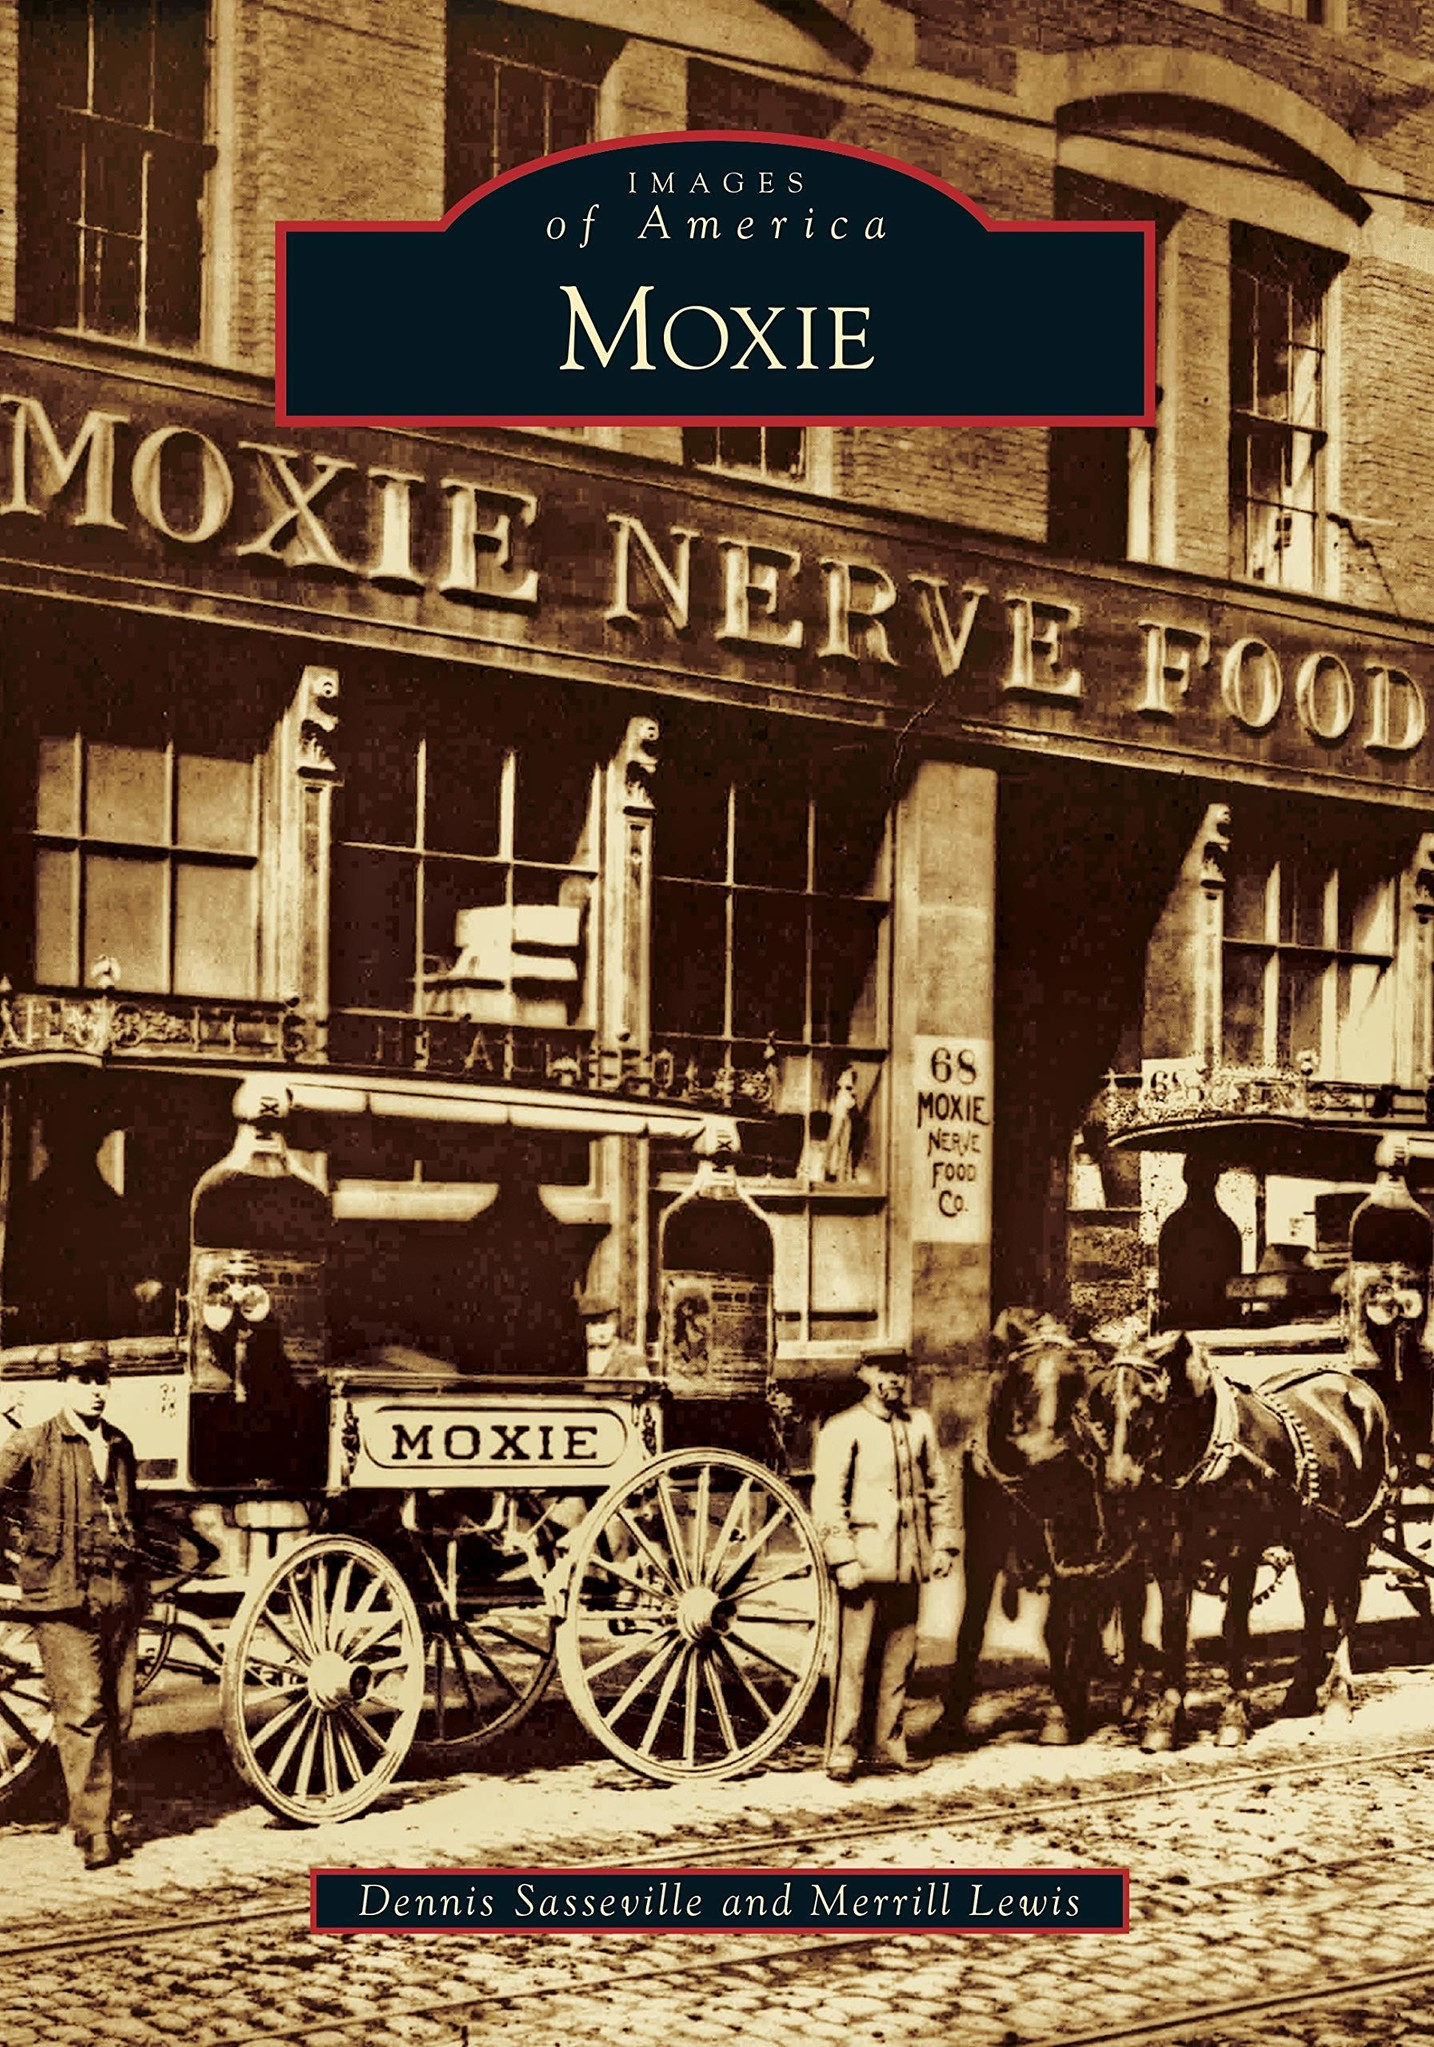 Moxie Images of America